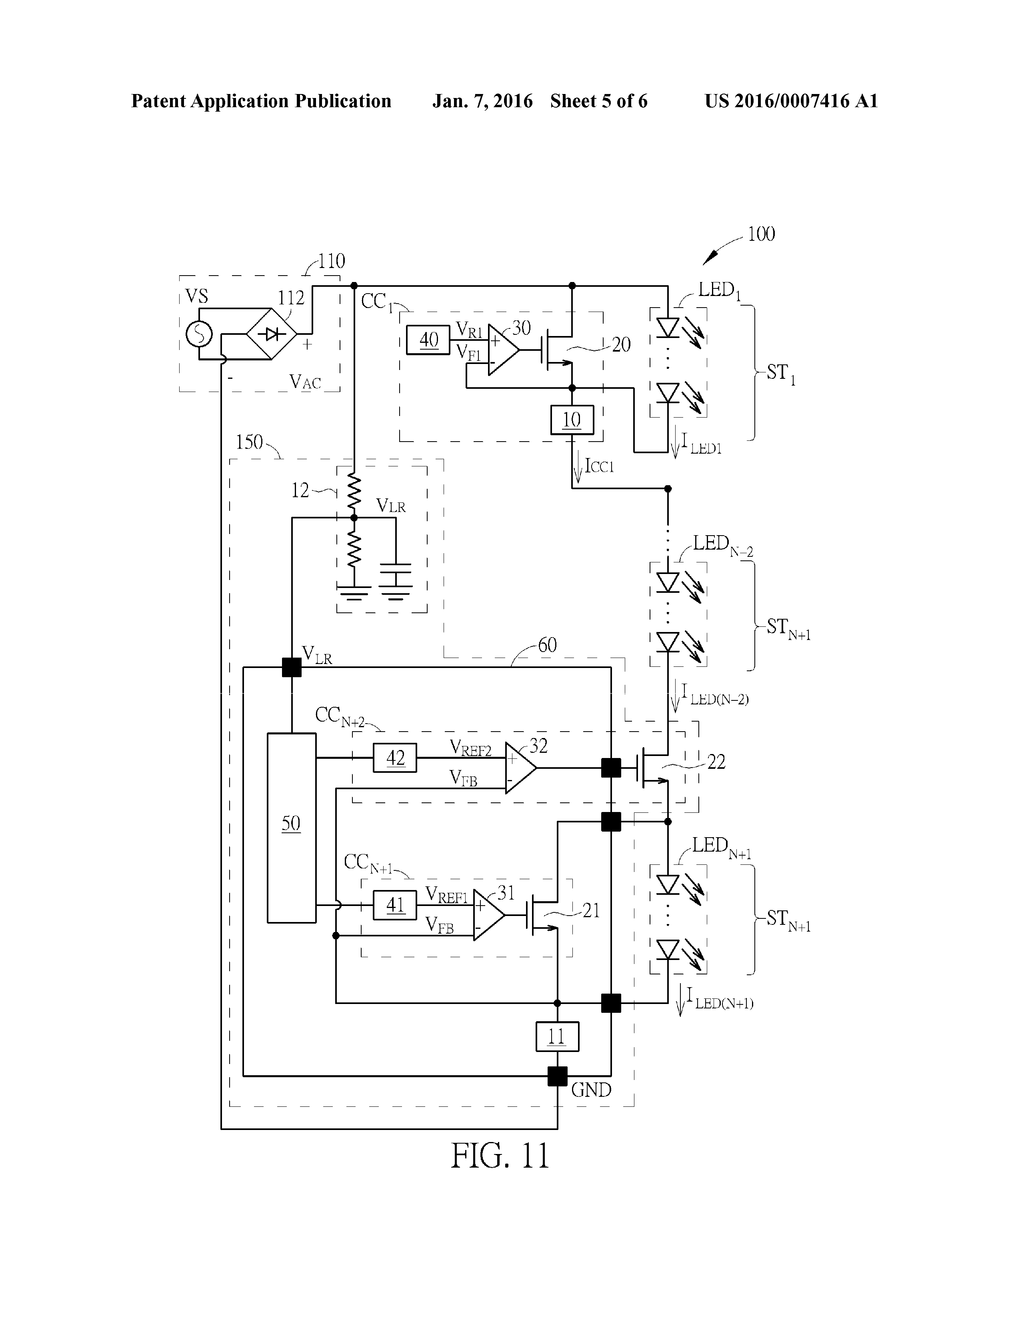 light emitting diode lighting device having multiple driving stages PN Diode light emitting diode lighting device having multiple driving stages and line load regulation control diagram schematic and image 06